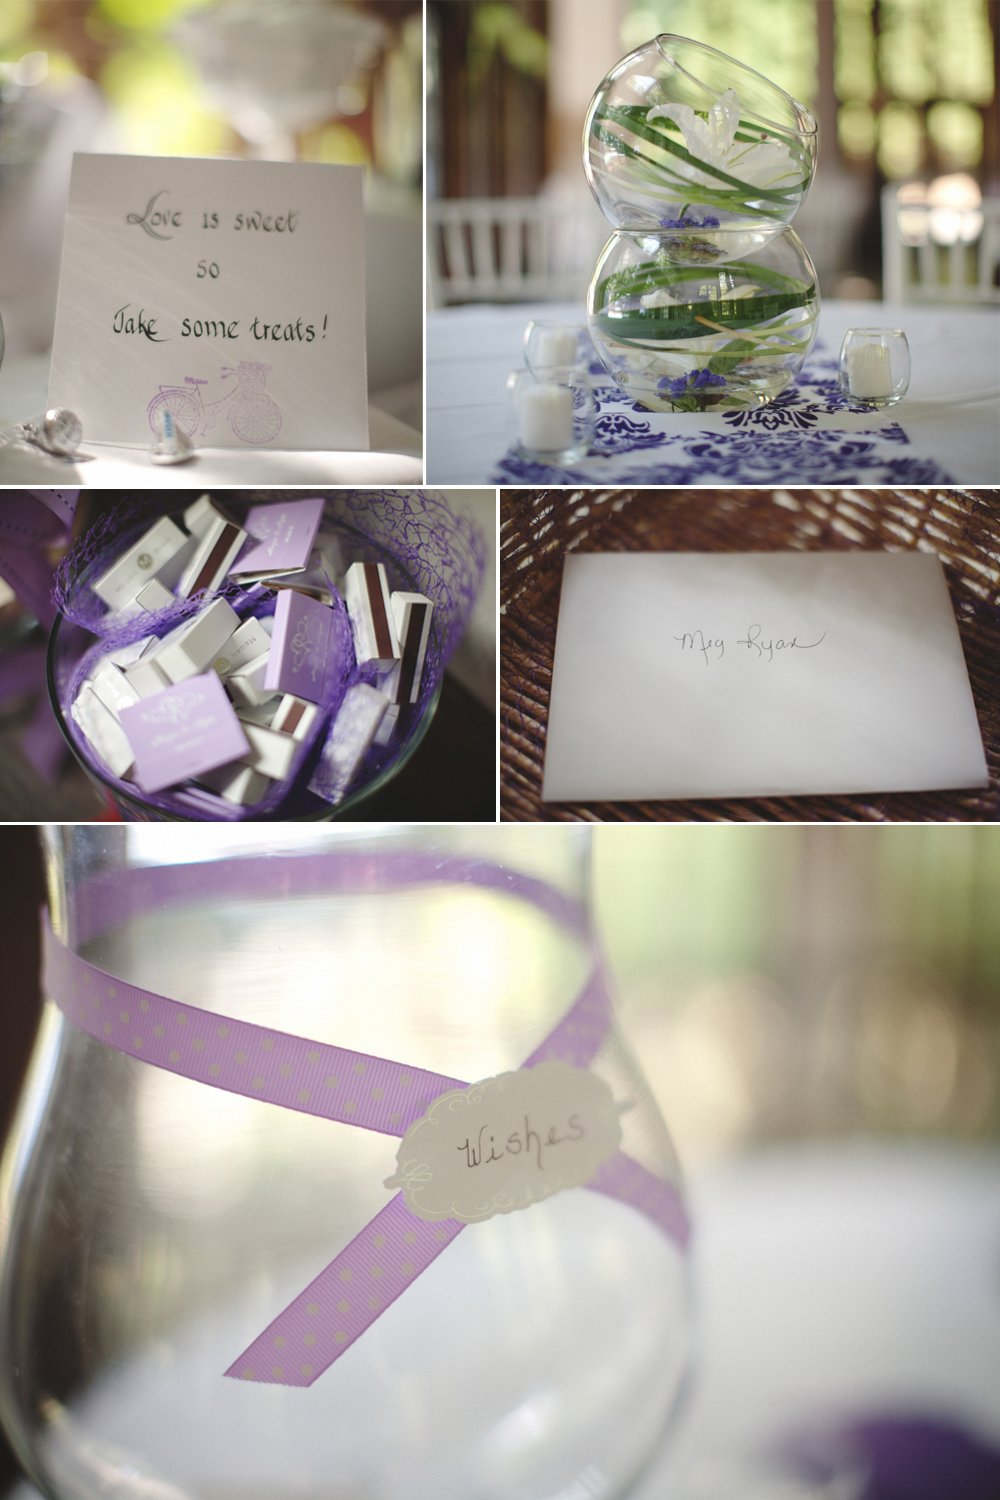 Real-wedding-summer-outdoor-wedding-venue-purple-white.full